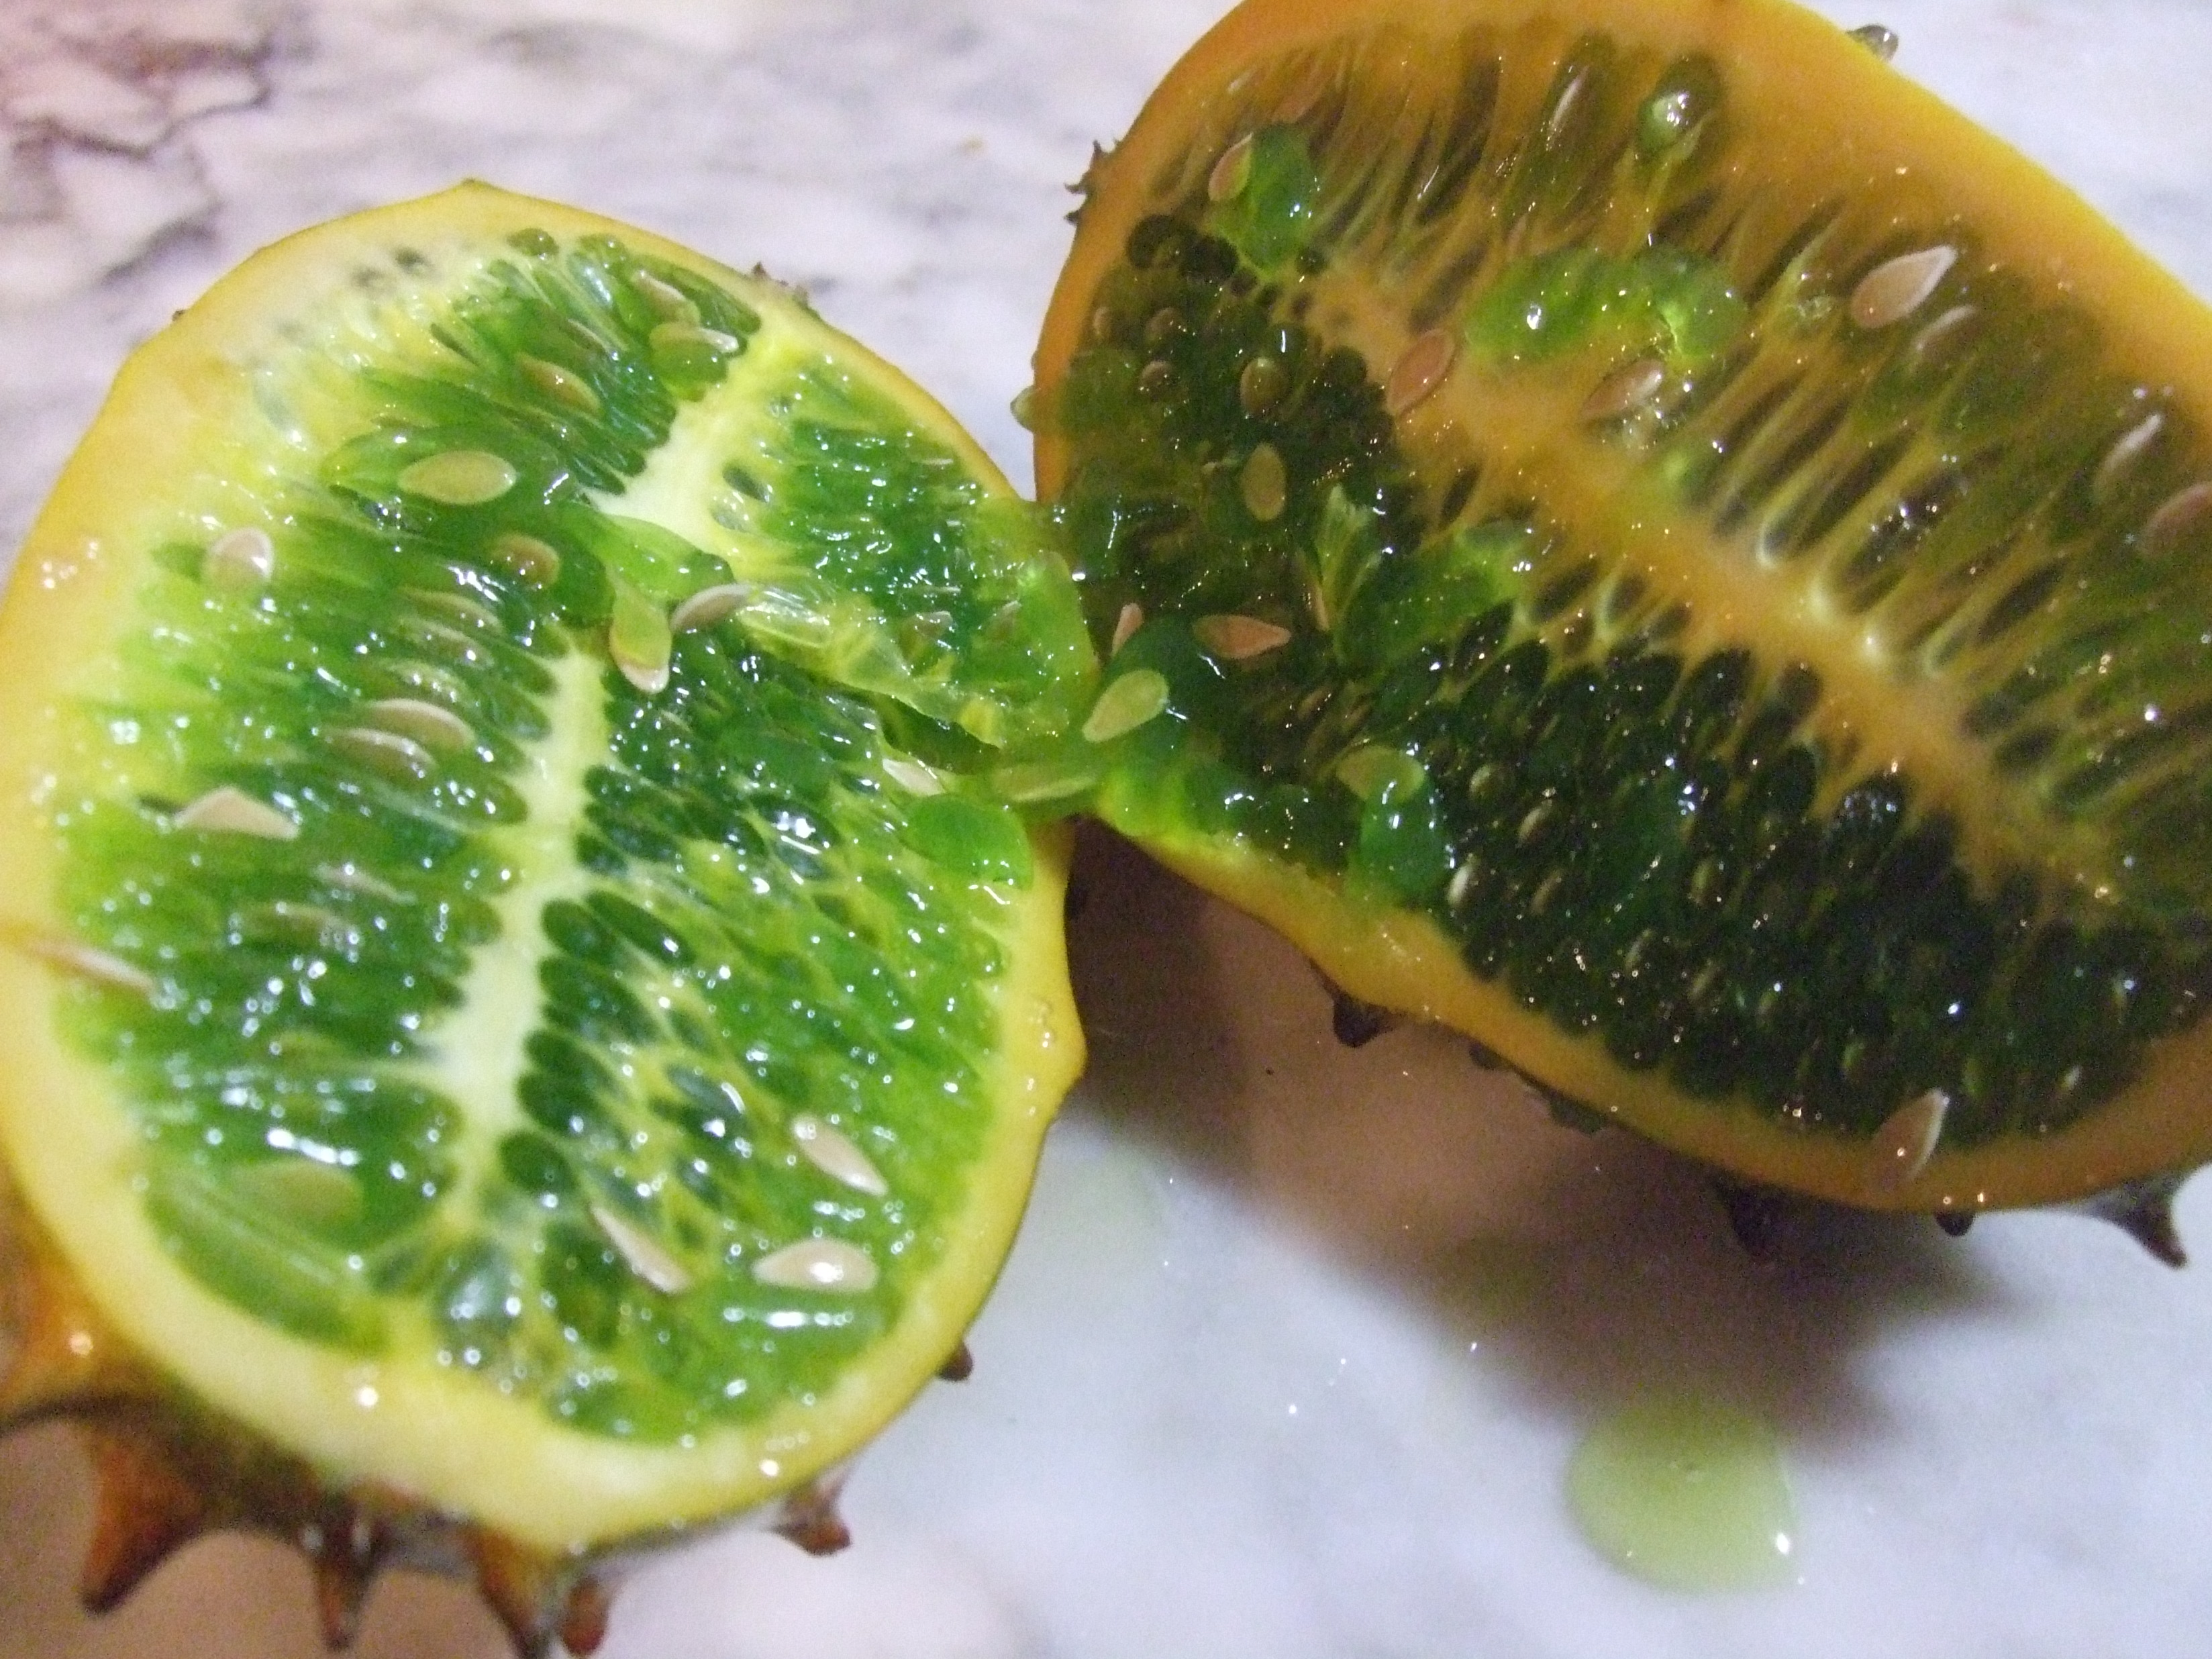 Communication on this topic: The Kiwano: The Quirky Fruit with Multiple , the-kiwano-the-quirky-fruit-with-multiple/